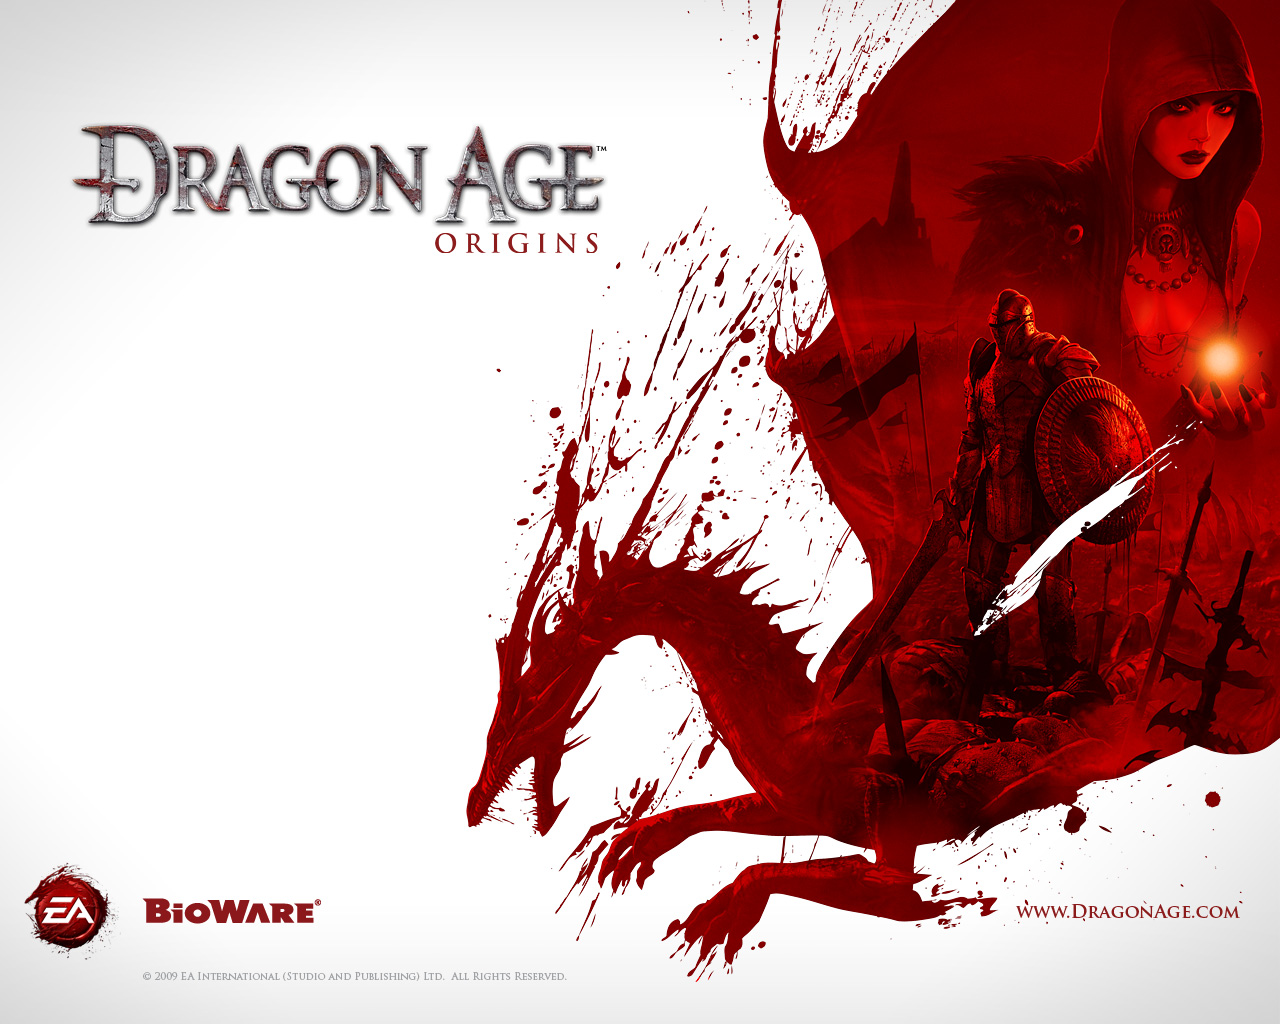 Dragon Age Origins Wallpapers: [Official] The CoolerMaster Storm Scout, Scout II Club